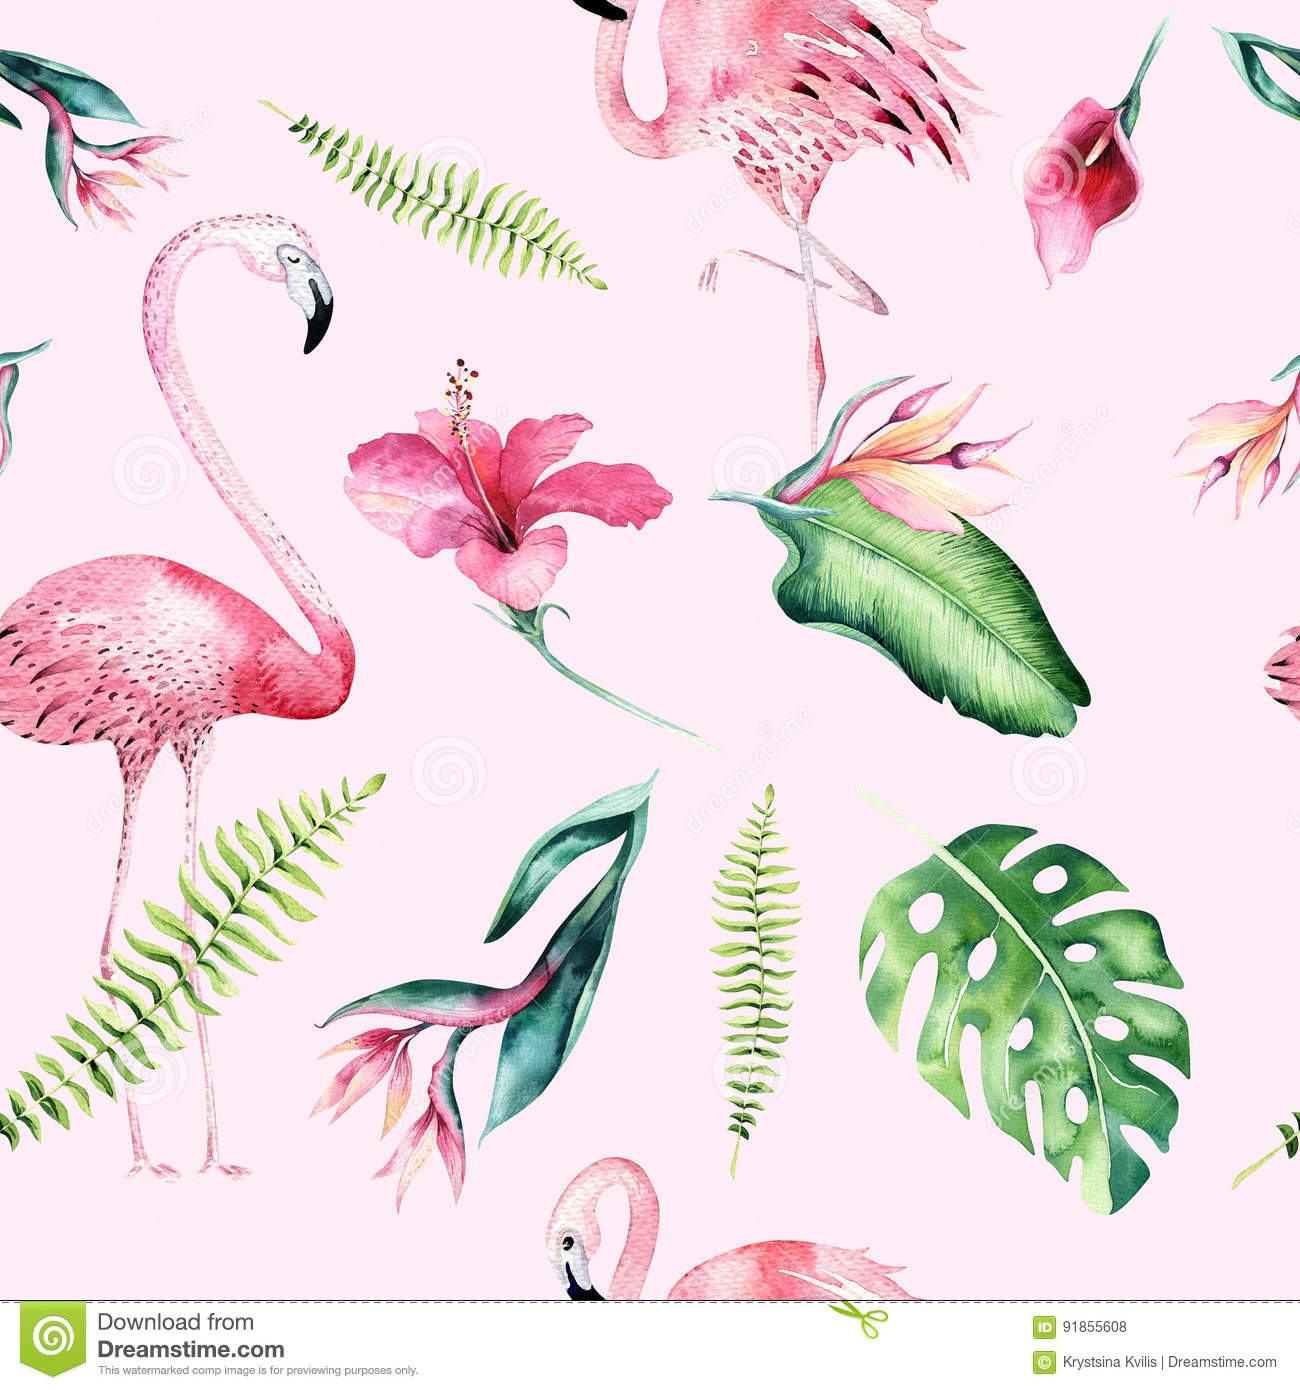 Download Tropical Isolated Seamless Pattern With Flamingo. Watercolor Tropic Drawing, Rose Bird And Greenery Palm Tree, Tropic Stock Photo - Image of aloha, leaf: 91855608